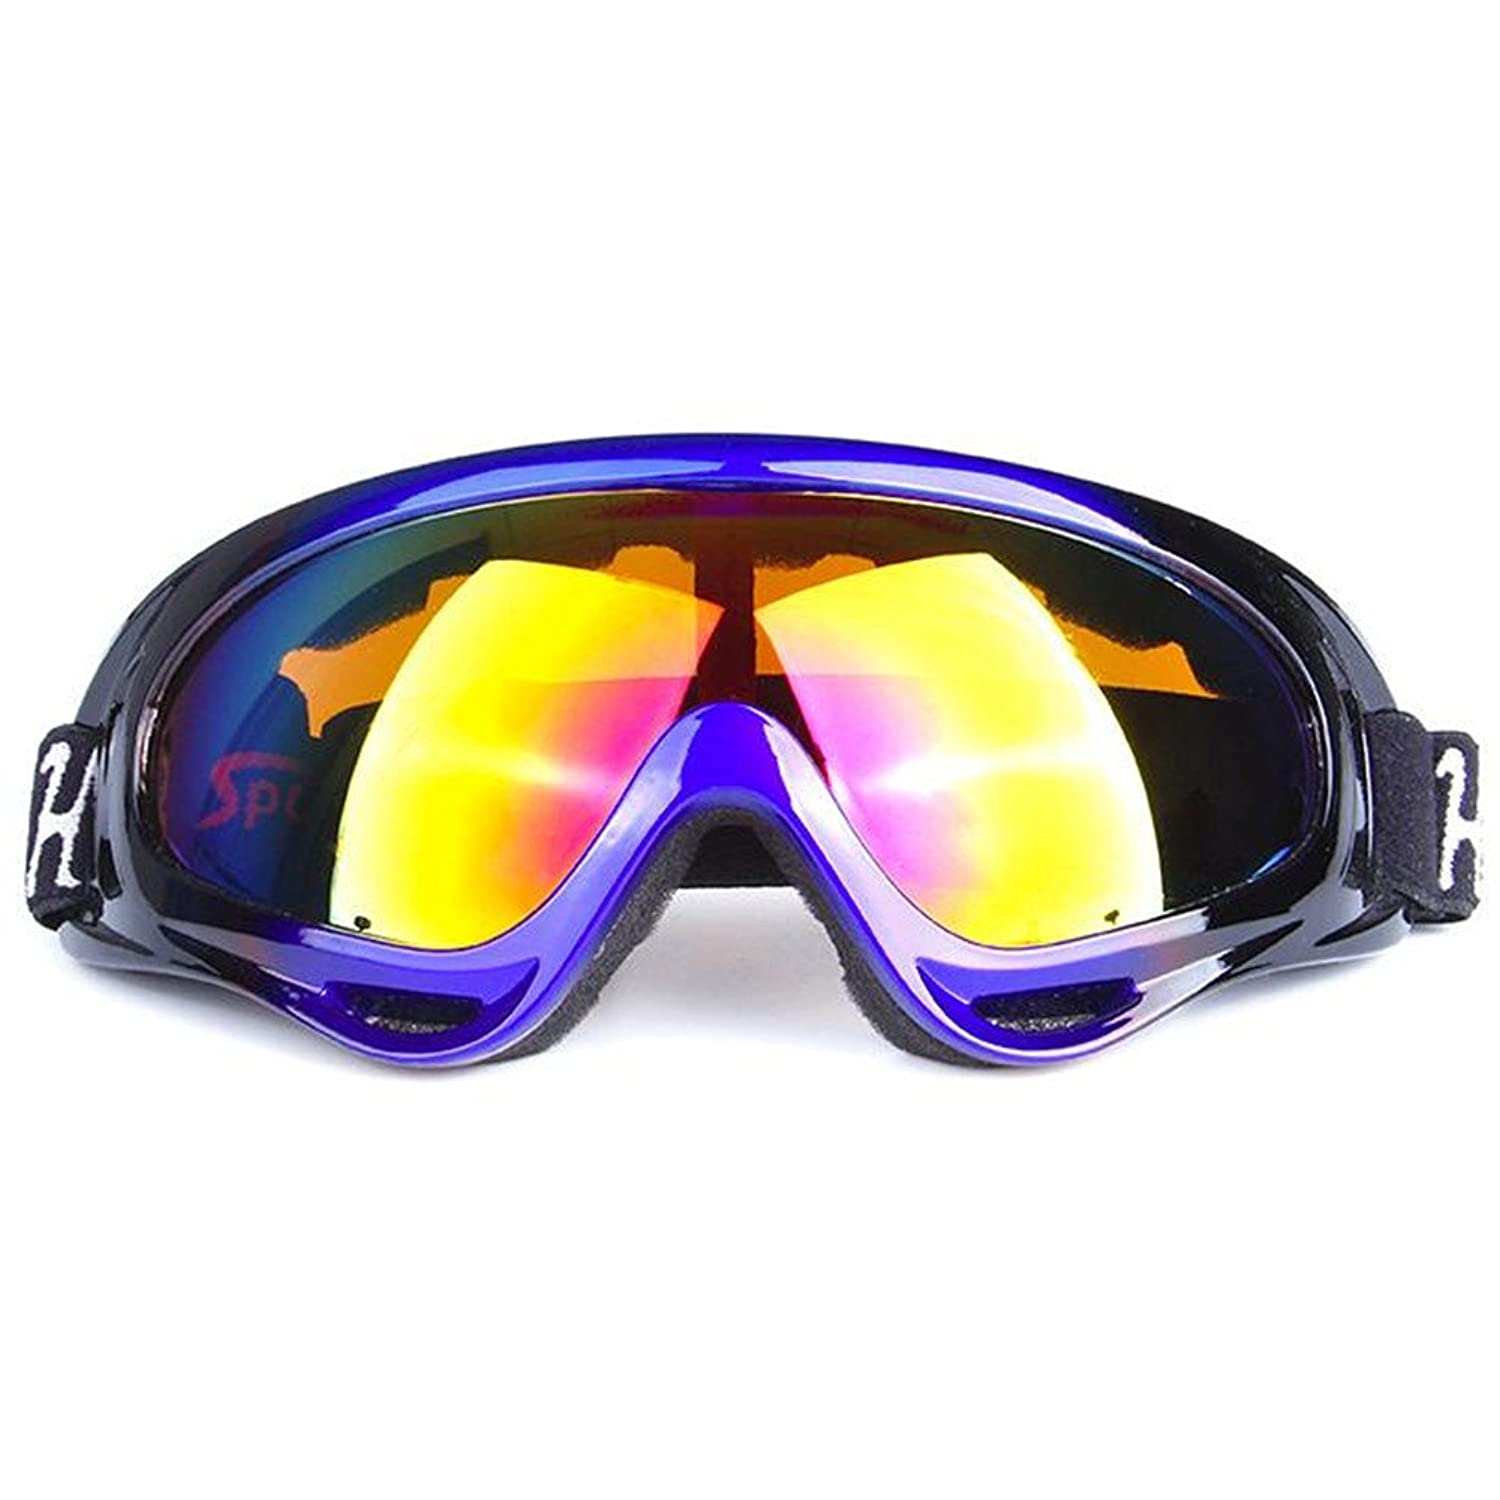 Y-H Unisex Adult Sports Ski TPU PC Ski Windproof Breathable Protection Goggle Eyewear